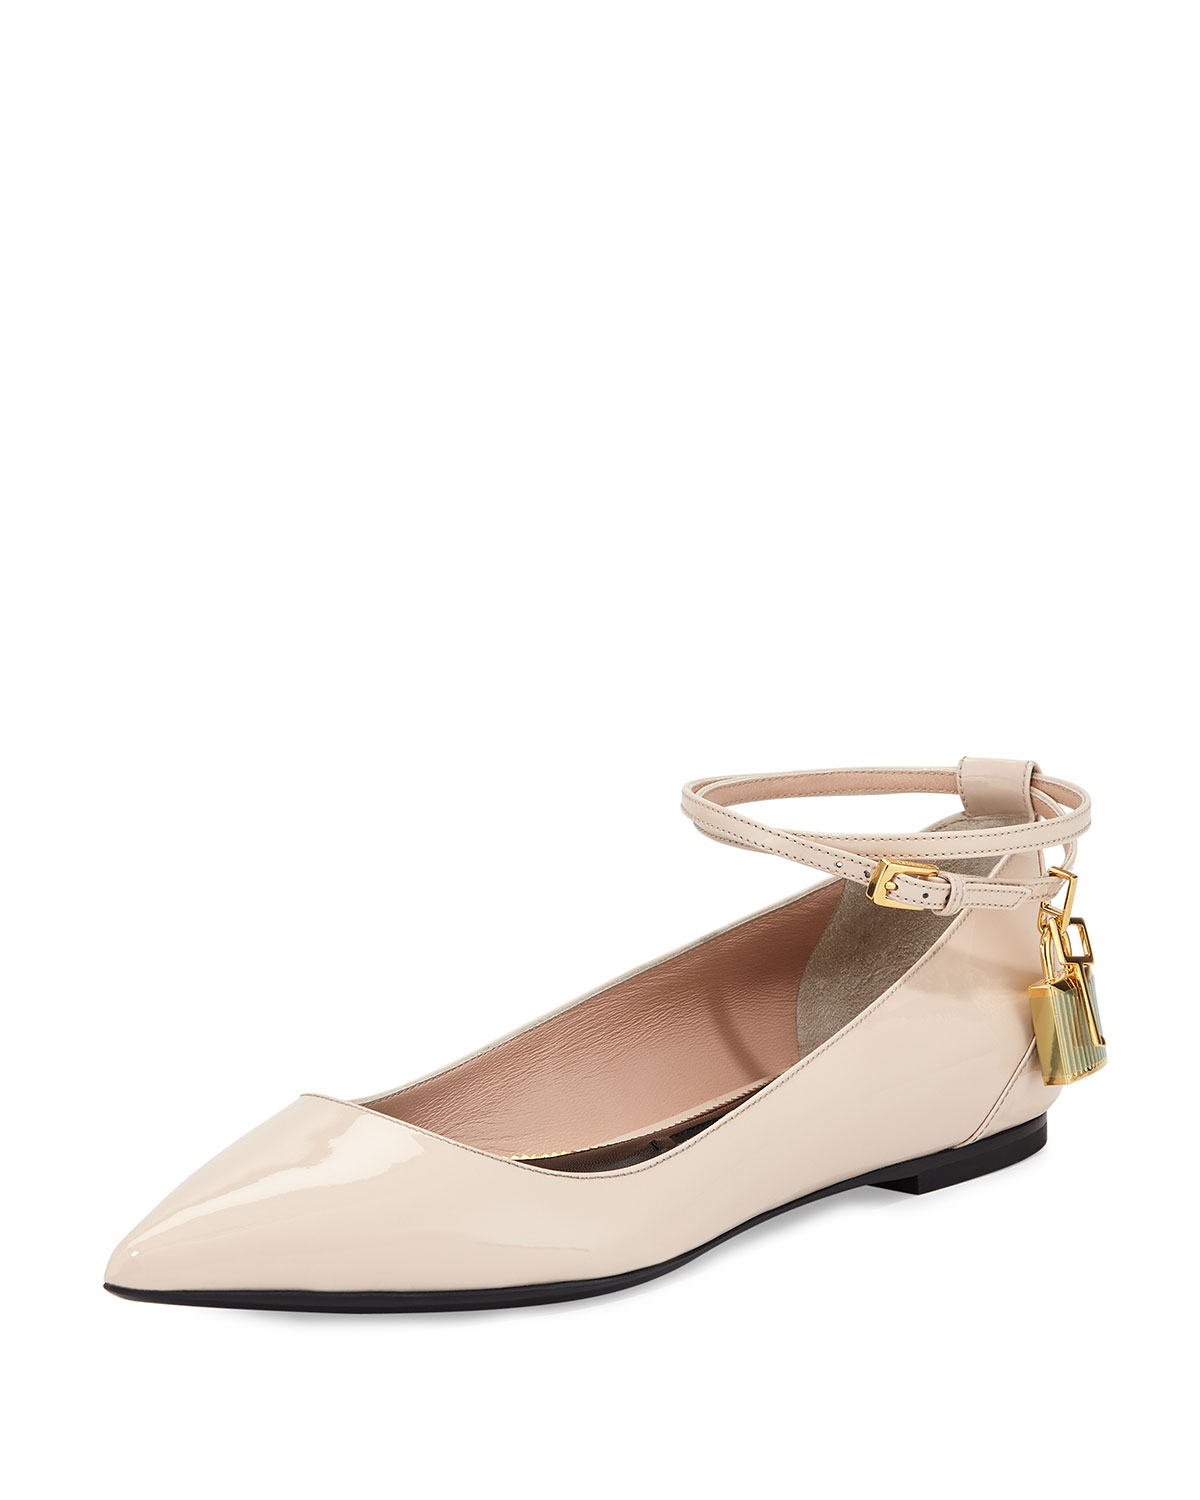 Tom Ford Shoes Women Flats